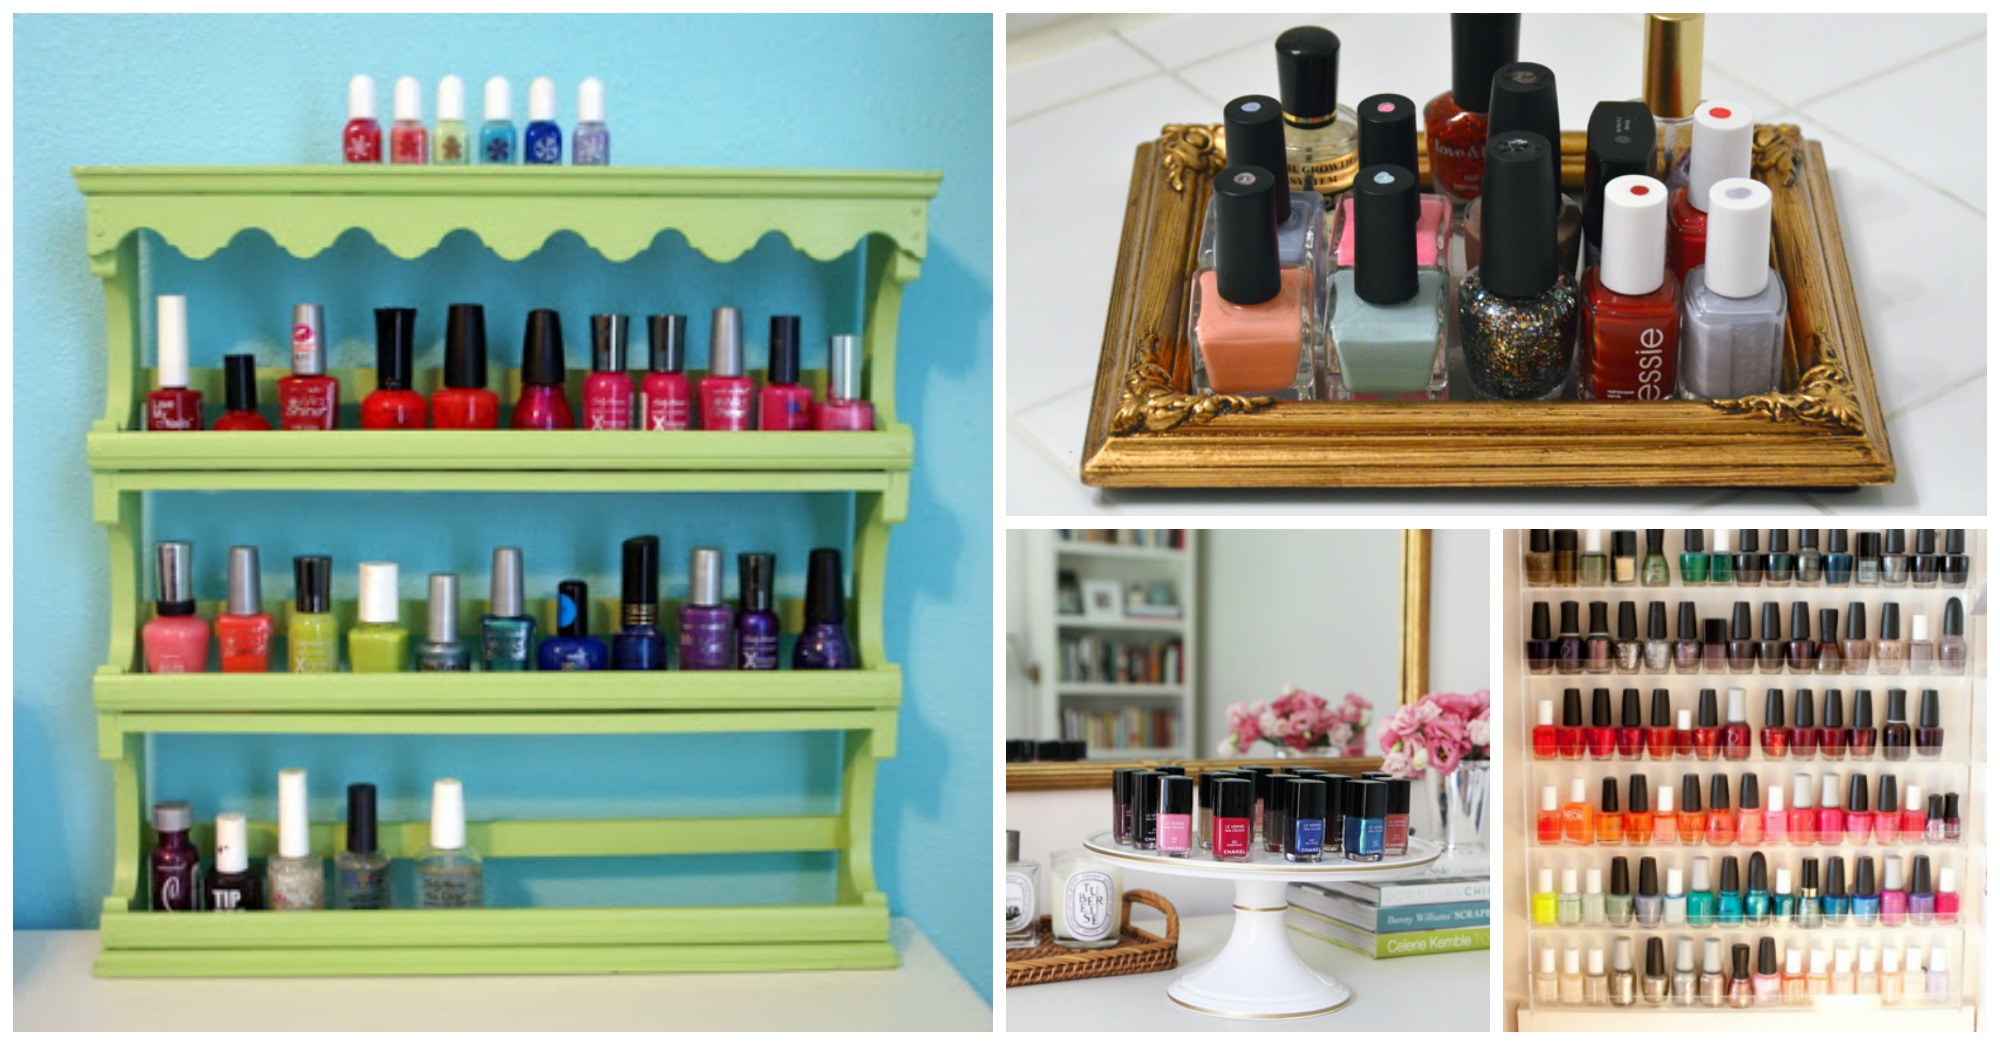 nail polish storage ideas Tag - Fashion Diva Design